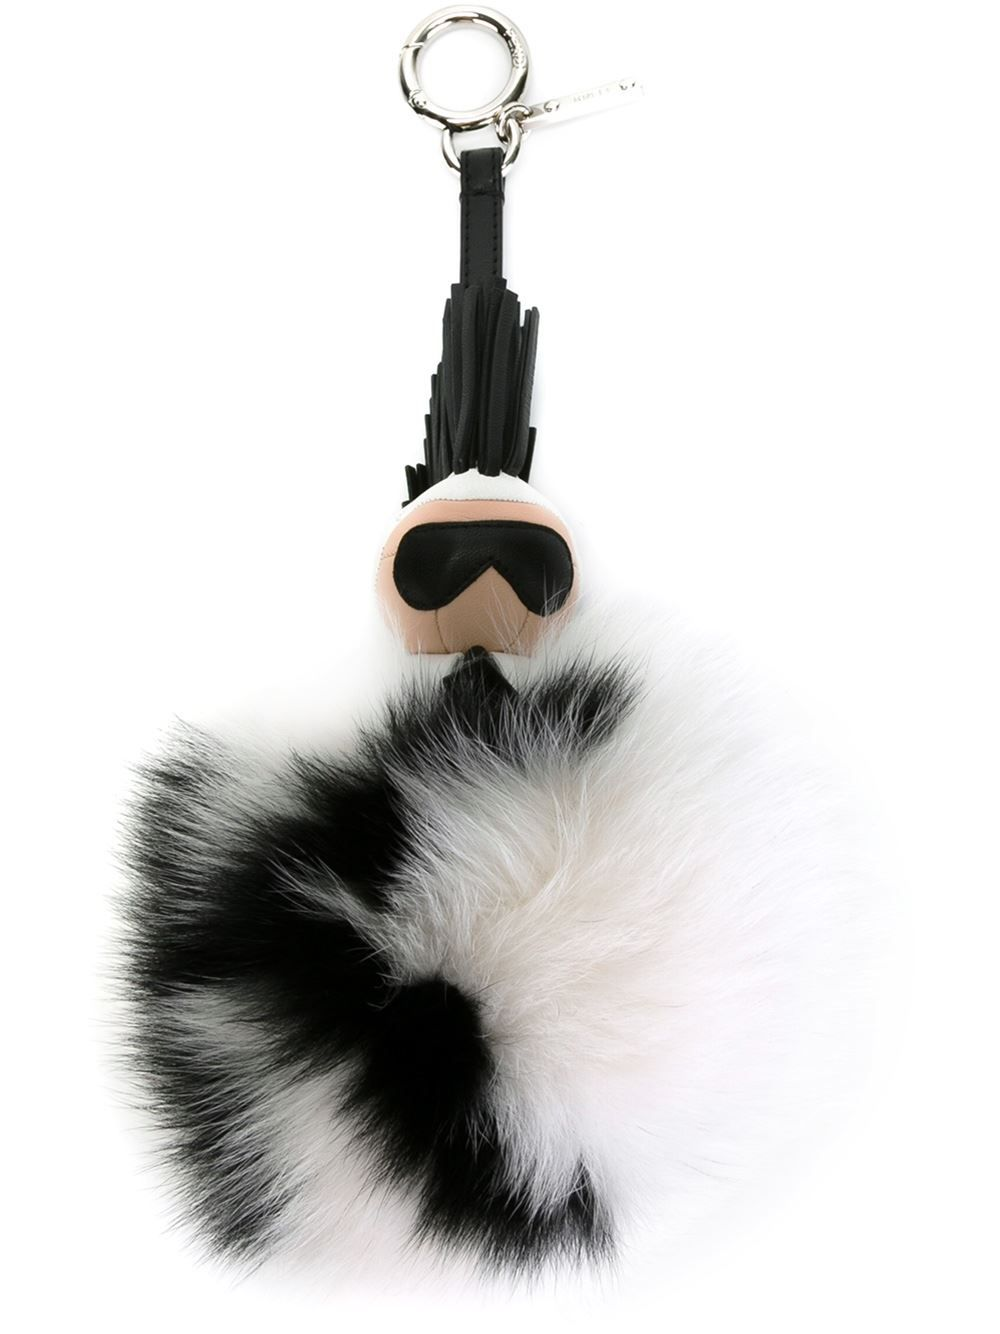 Fendi Karlito Karl Charm Fur Keyring Accessories Fashion Www - Porte clé fendi